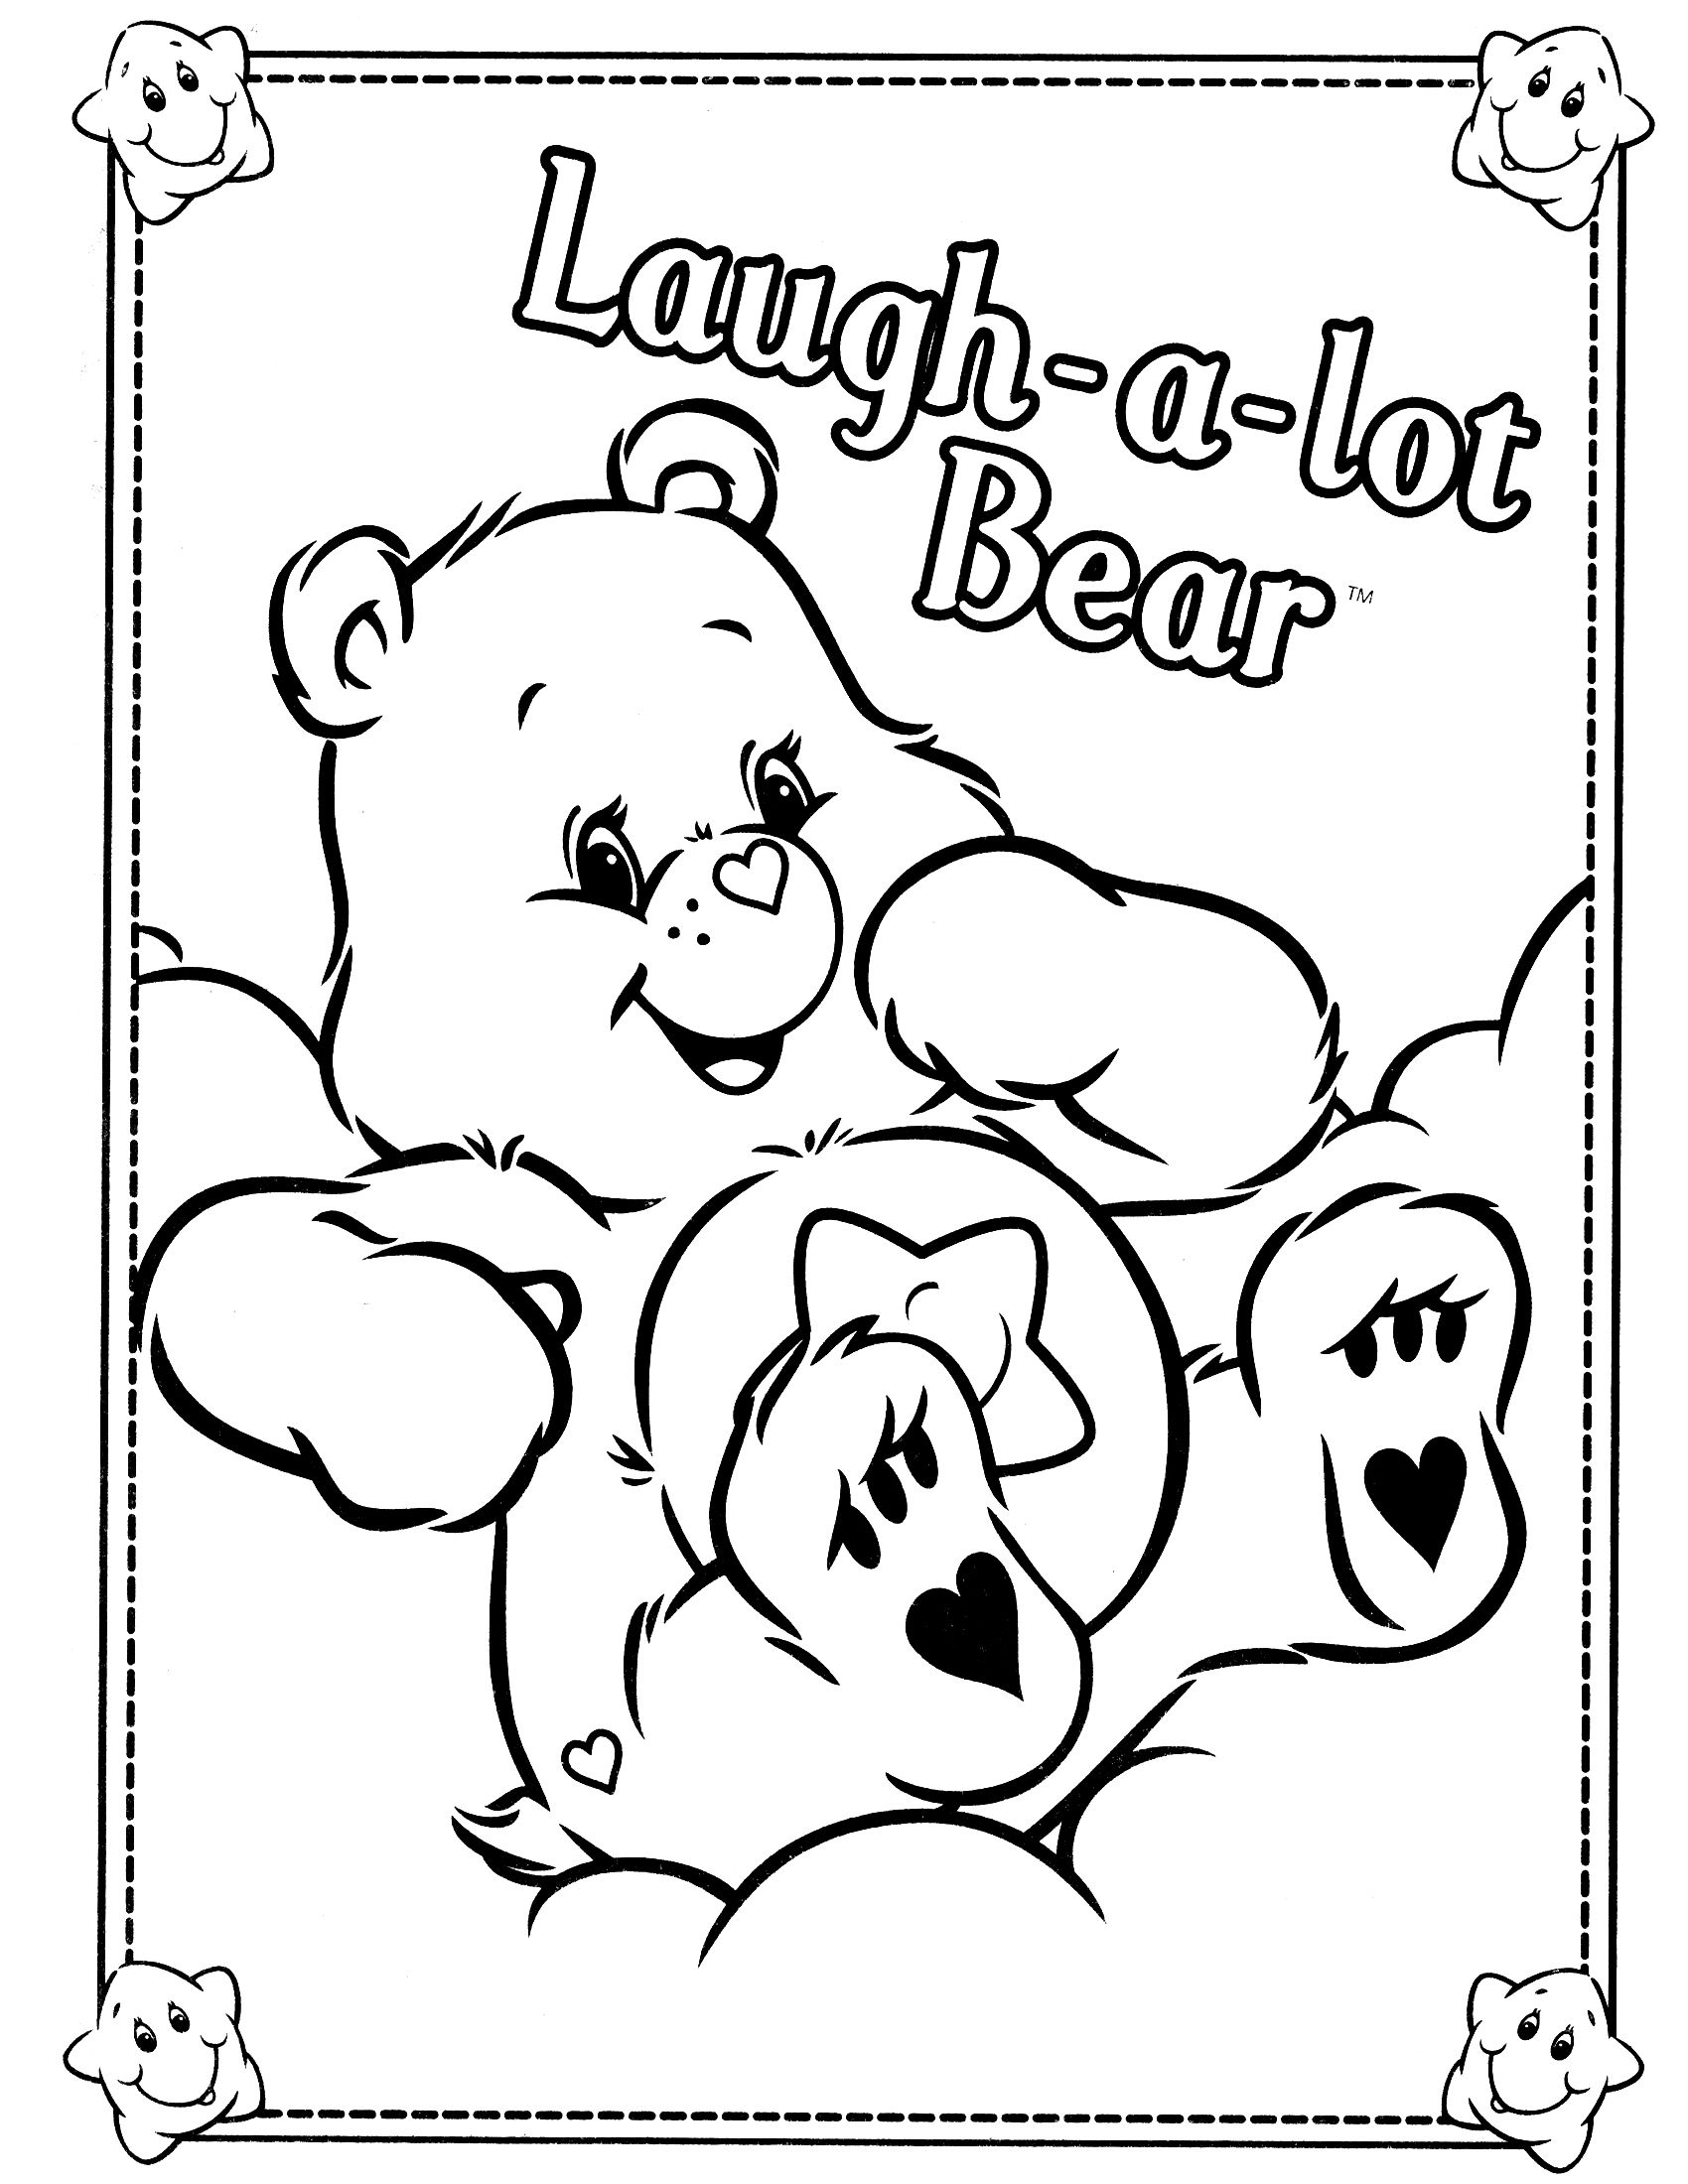 Book care coloring sheet - Care Bears Coloring Page Tagged With Care Bear Coloring Pages 5